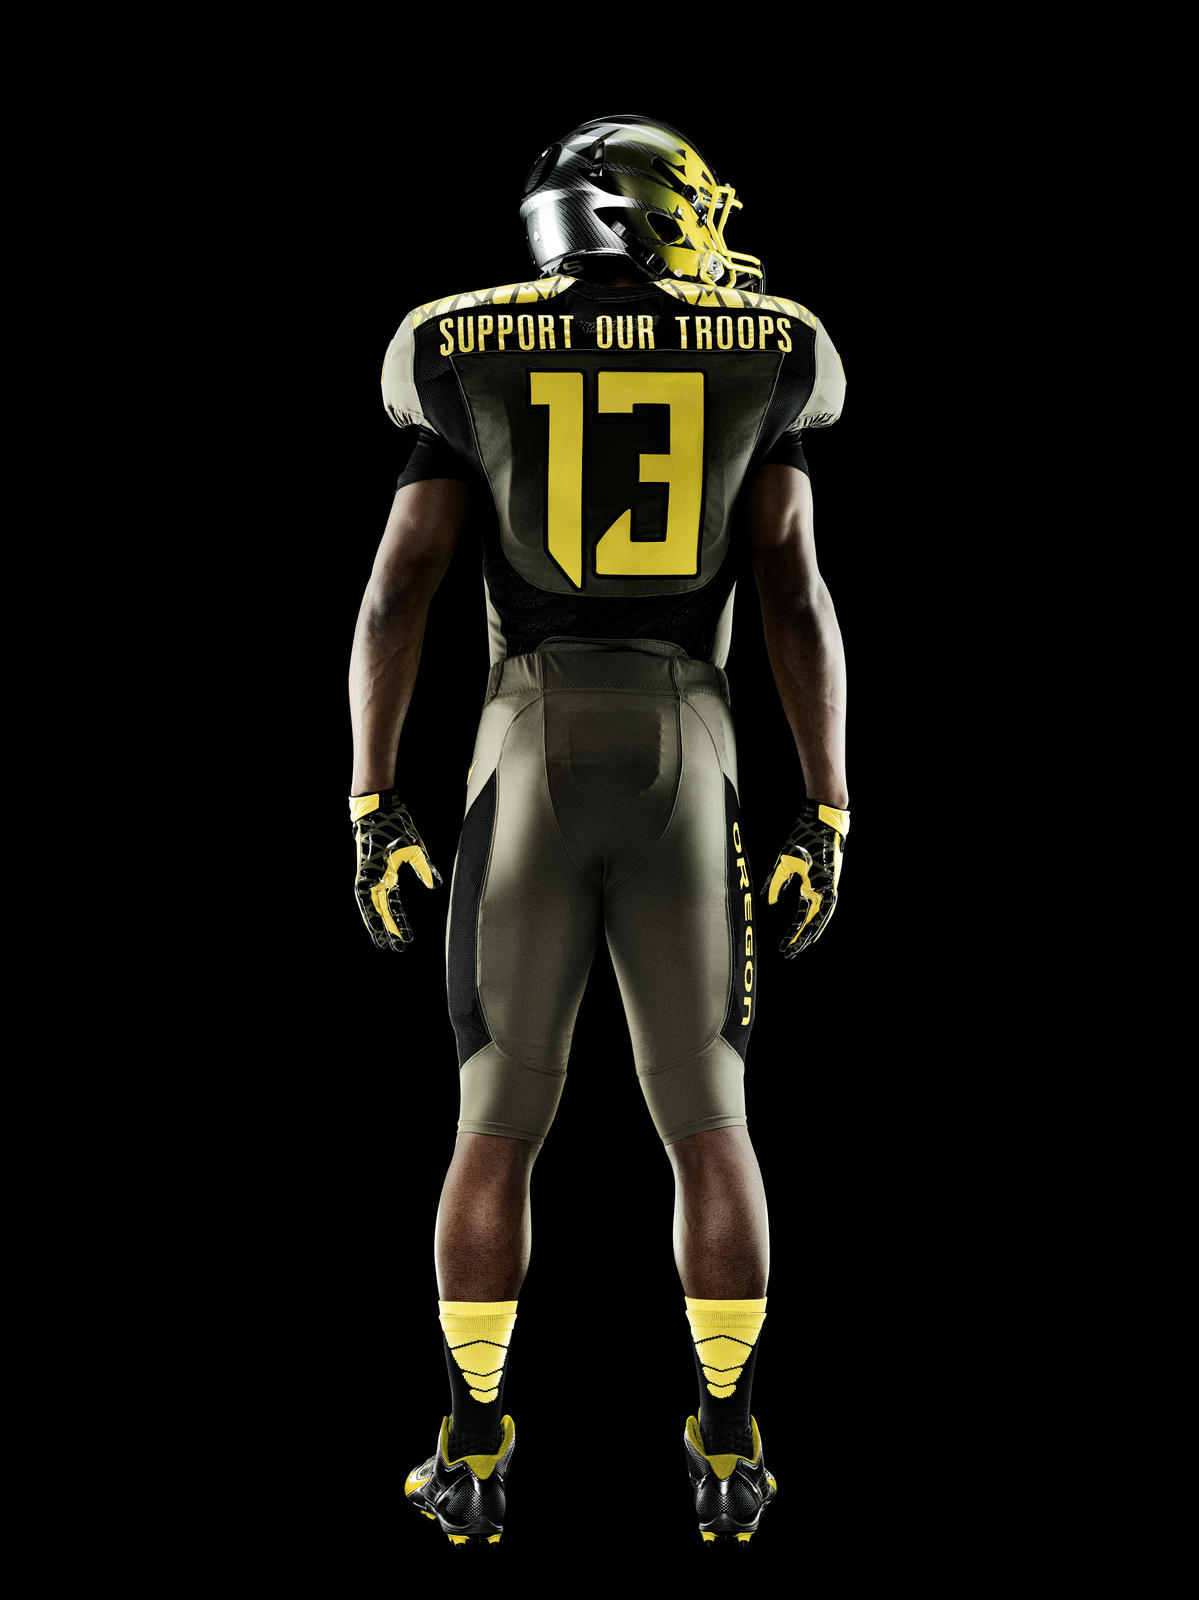 Oregon Ducks Spring Game Uniforms Honor Service Men And